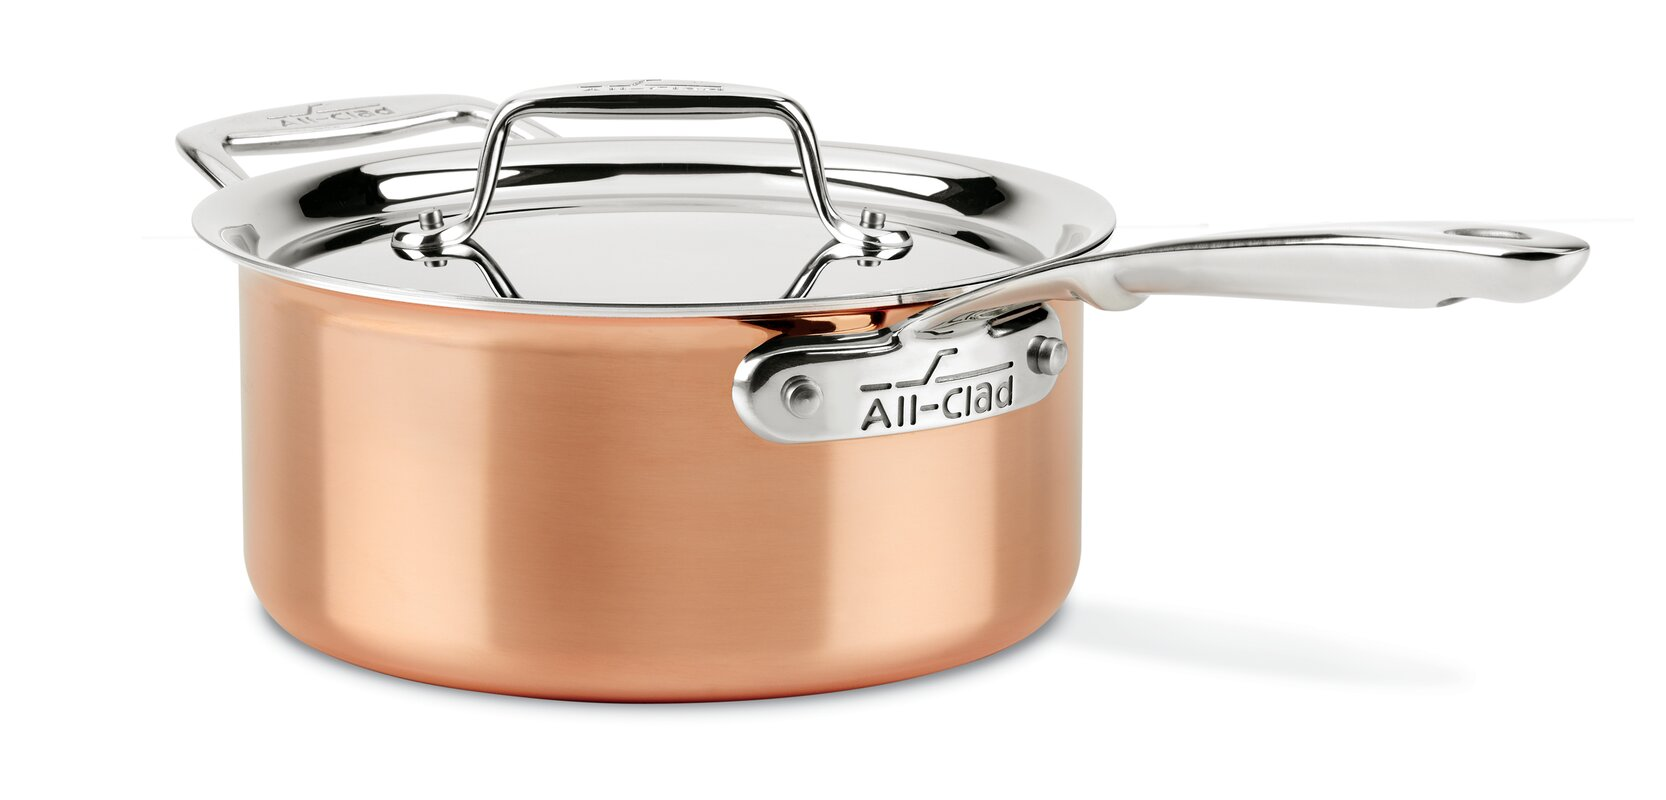 All-Clad 3 qt. Copper Saucepan with Lid